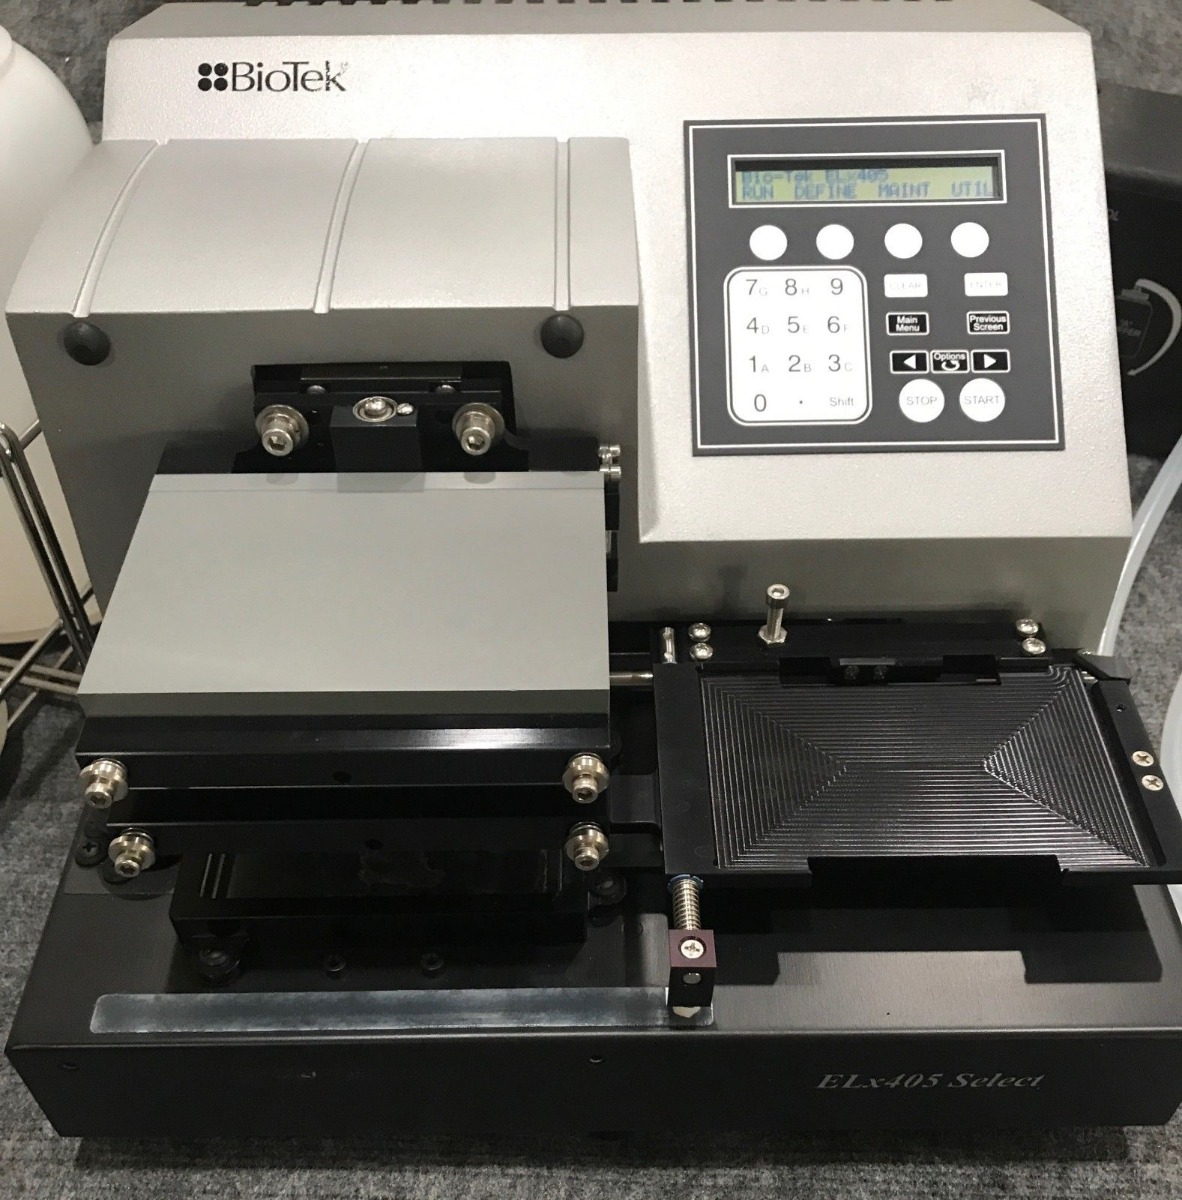 BioTek ELx405 Select Microplate Washer